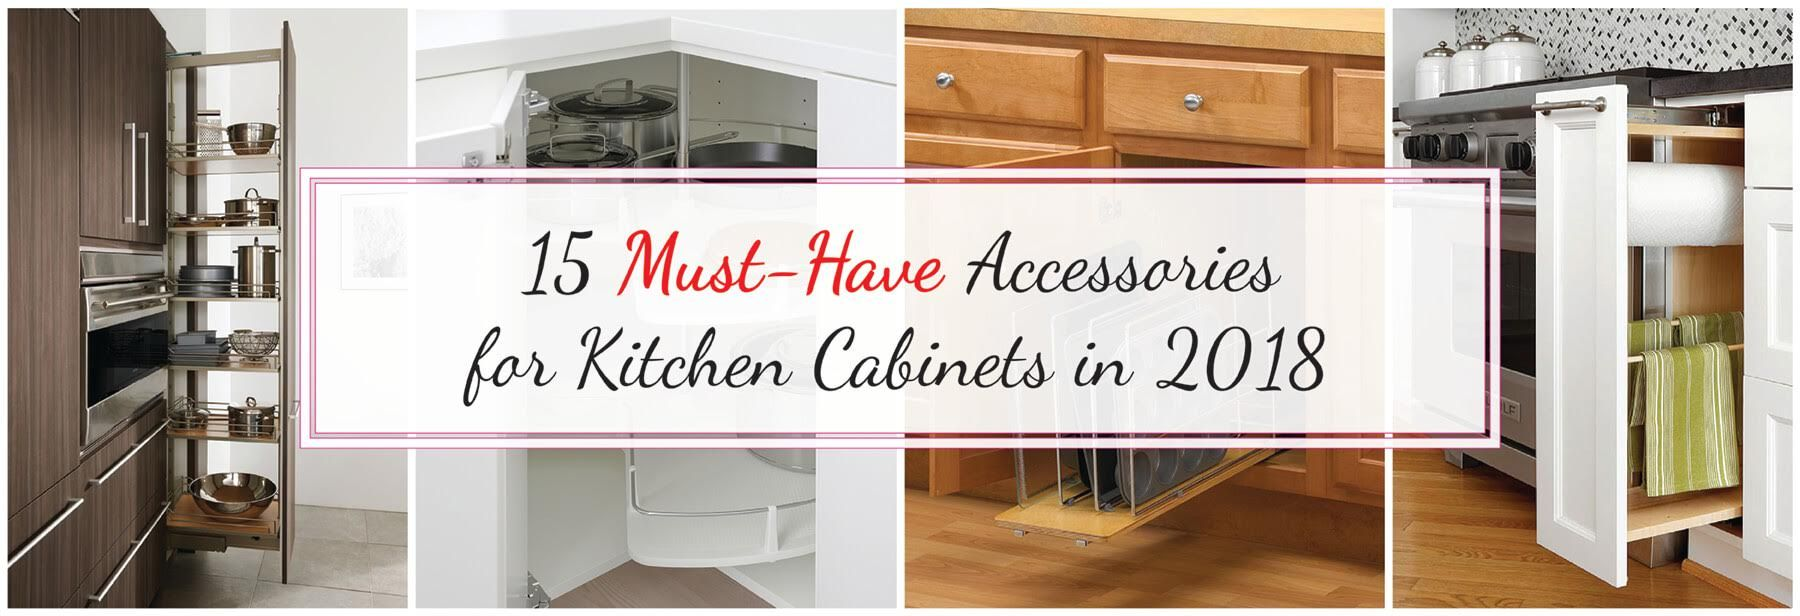 15 Must Have Accessories For Kitchen Cabinets In 2020 Best Online Kitchen Cabinet Accessories Kitchen Cabinets Replacing Kitchen Countertops